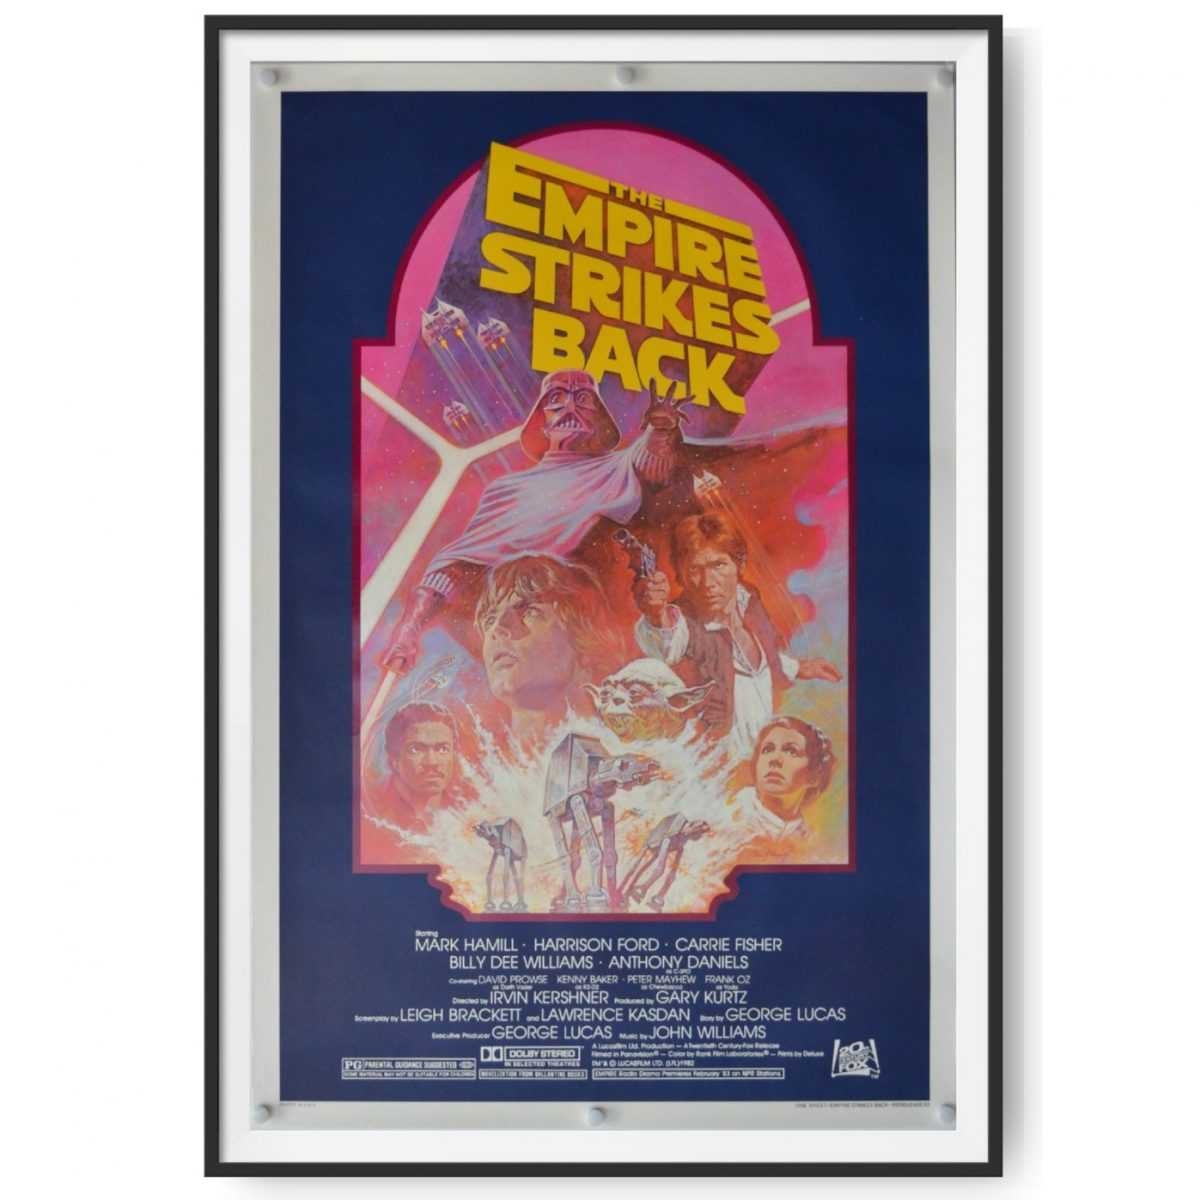 This is US cinema poster for a 1982 re-release of 'The Empire Strikes Back'